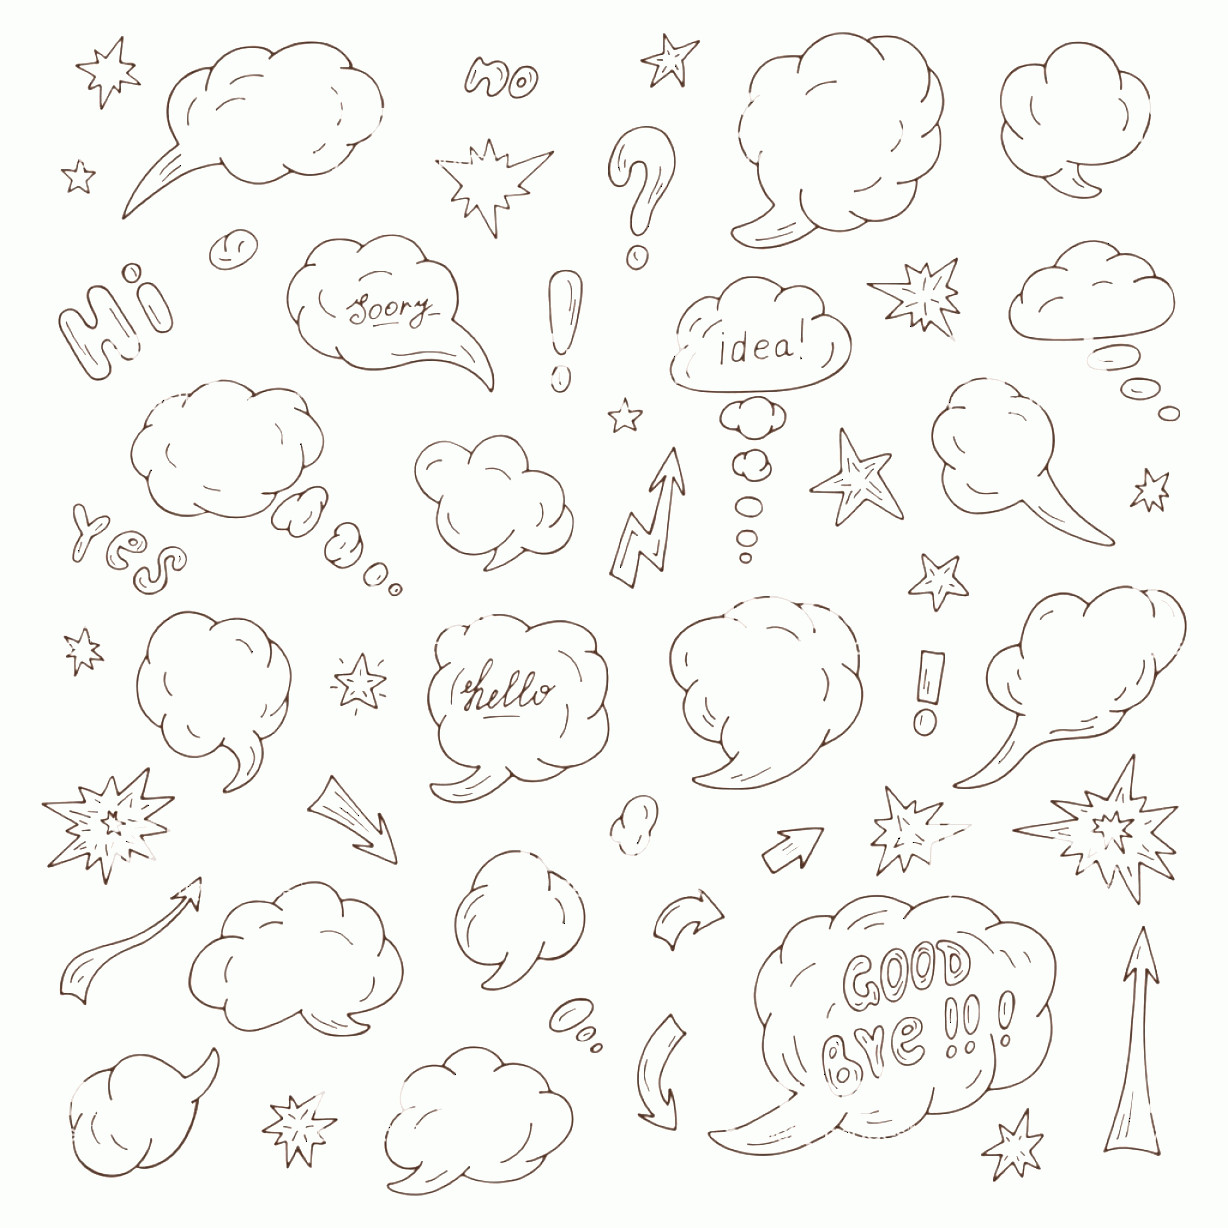 Thought Bubble Vector Sketch: Hand Drawn Doodle Speech And Thought Bubbles Vector Illustration Gm